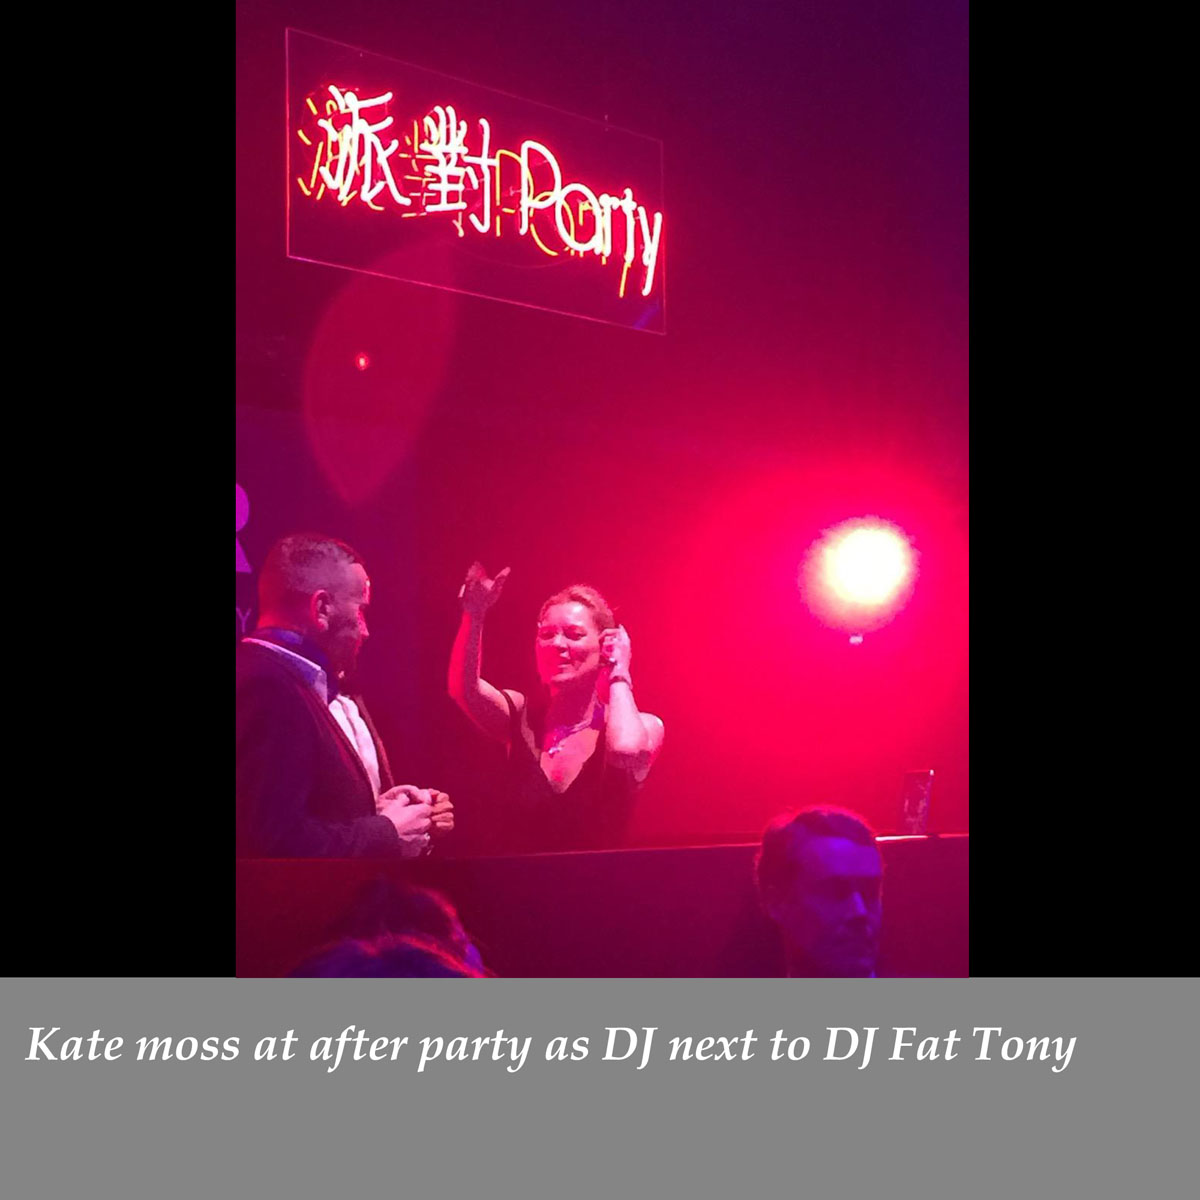 Kate-moss-at-after-party-as-DJ-next-to-DJ-Fat-Tony